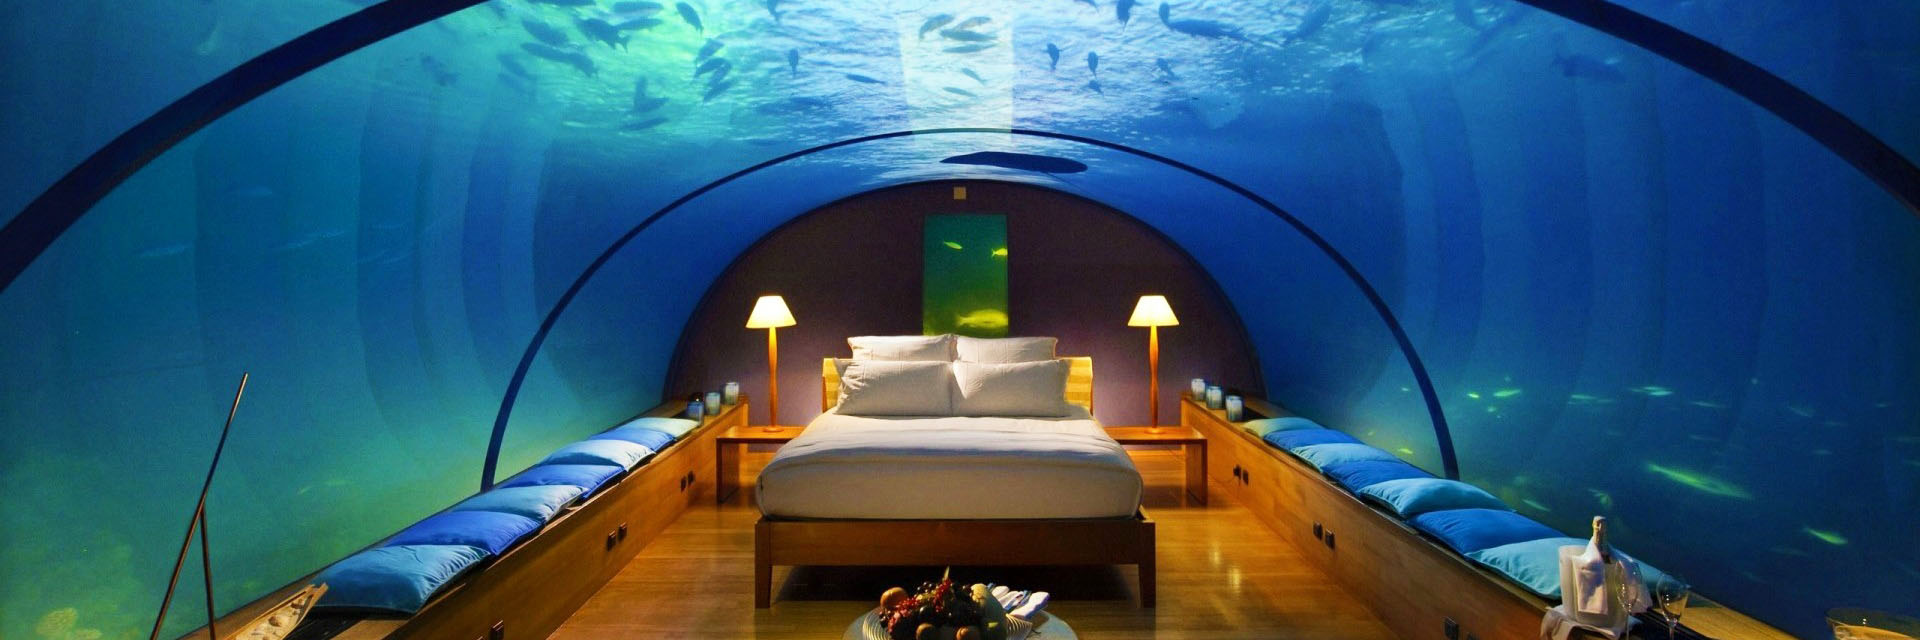 palm jumeirah atlantis room images galleries with a bite. Black Bedroom Furniture Sets. Home Design Ideas